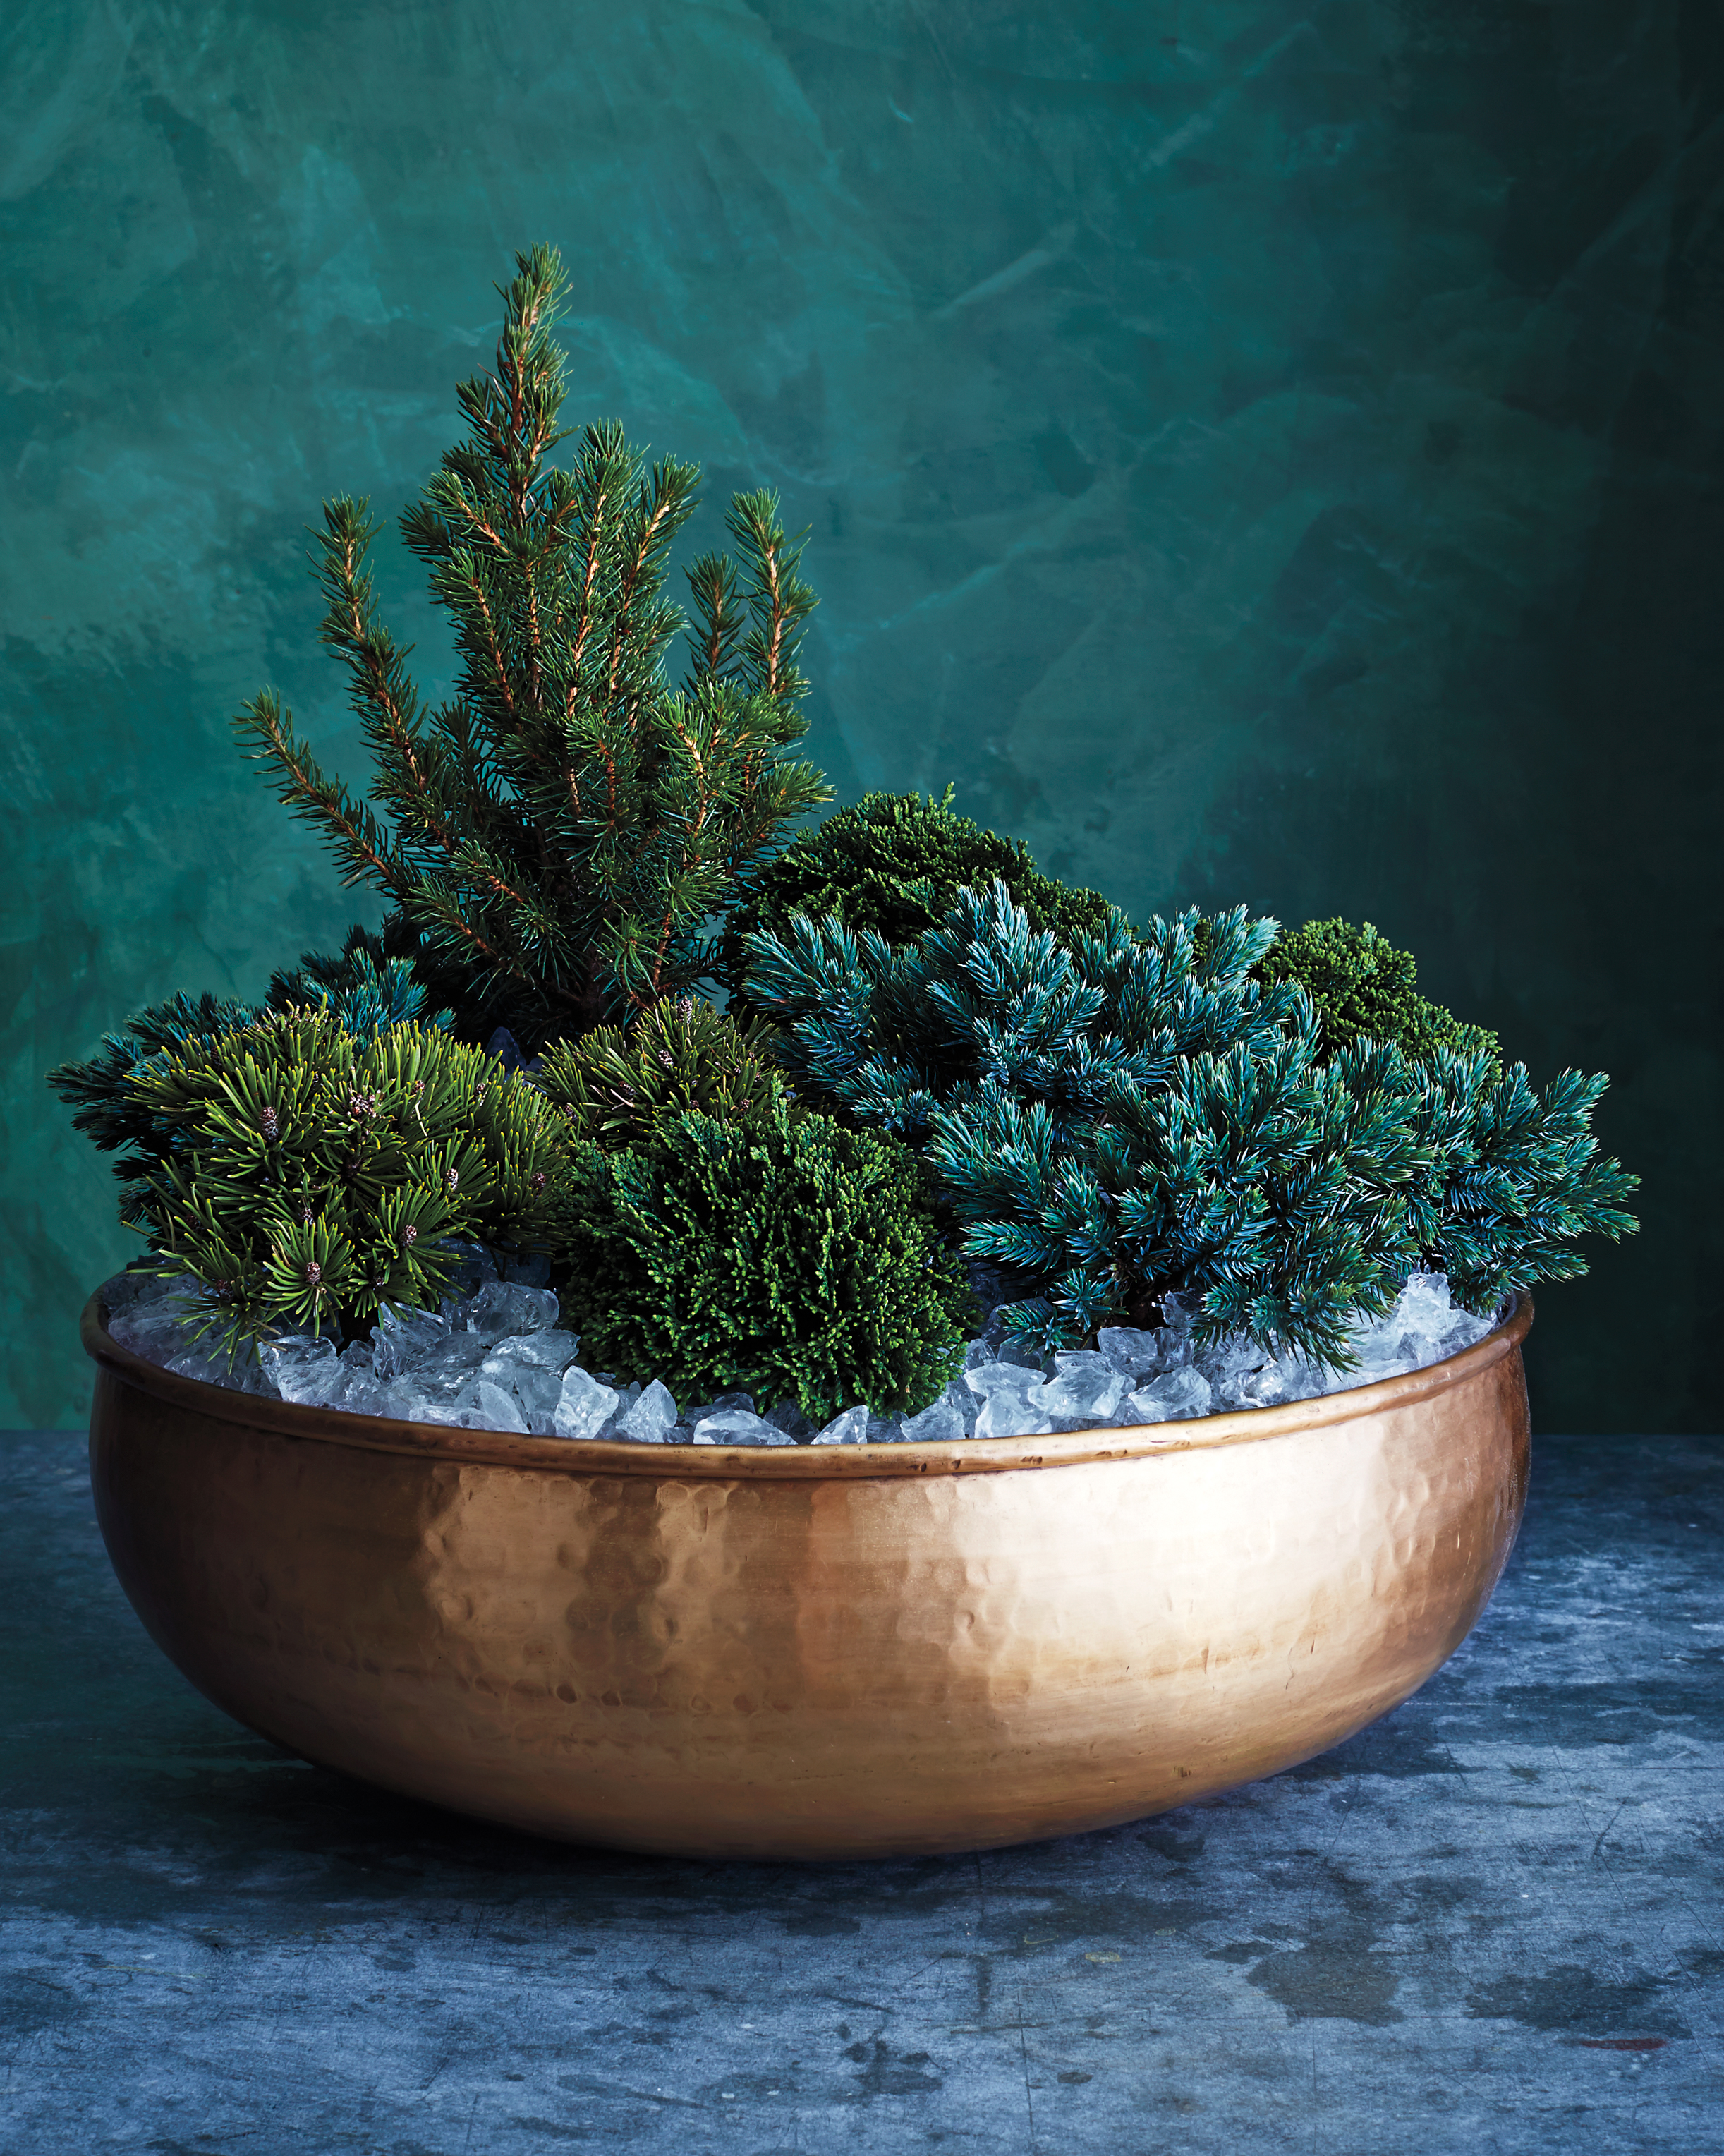 Welcome guests with this elegant assortment of outdoor plants. A large brass bowl and ice-like glass mulch elevate the grouping. Get started by placing a thin layer of mulch at the bottom of the bowl; then arrange conifers (in original plastic nursery pots) in the bowl. Position tallest plant slightly off-center in back to anchor its composition. Fill in with rest of plants, leaving an inch around rim. Finally, add bits of bubble packaging to keep pots in place, then finish with a top layer of mulch. Be sure to keep it in a protected location outdoors. If temperature drops below 20 degrees, move it to a garage or other unheated, sheltered location.Shop Now: Jamali Garden Large Gold Iron Bowl, $20, jamaligarden.com. Afloral Crushed-Glass Mulch, $16 per jar, afloral.com.